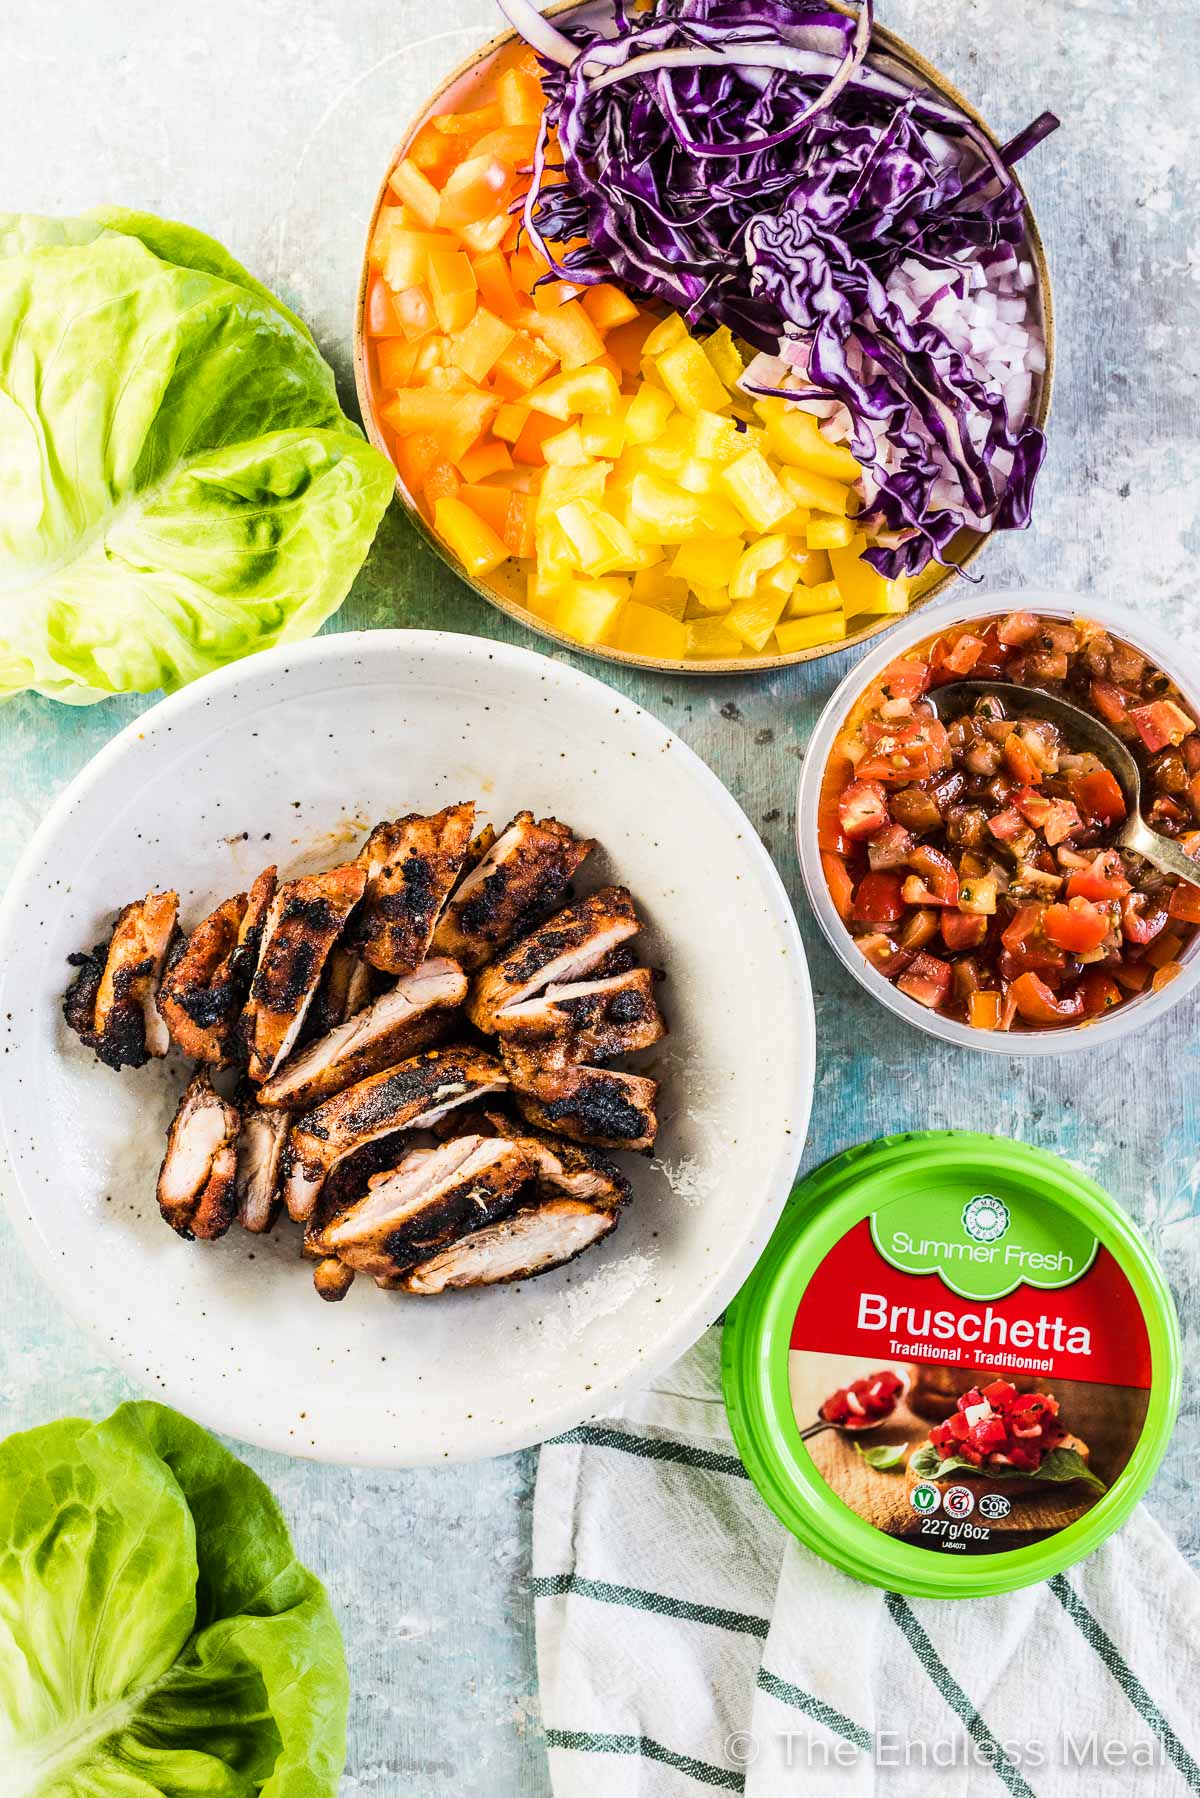 All the ingredients to make bruschetta chicken lettuce wraps laid out on a table.